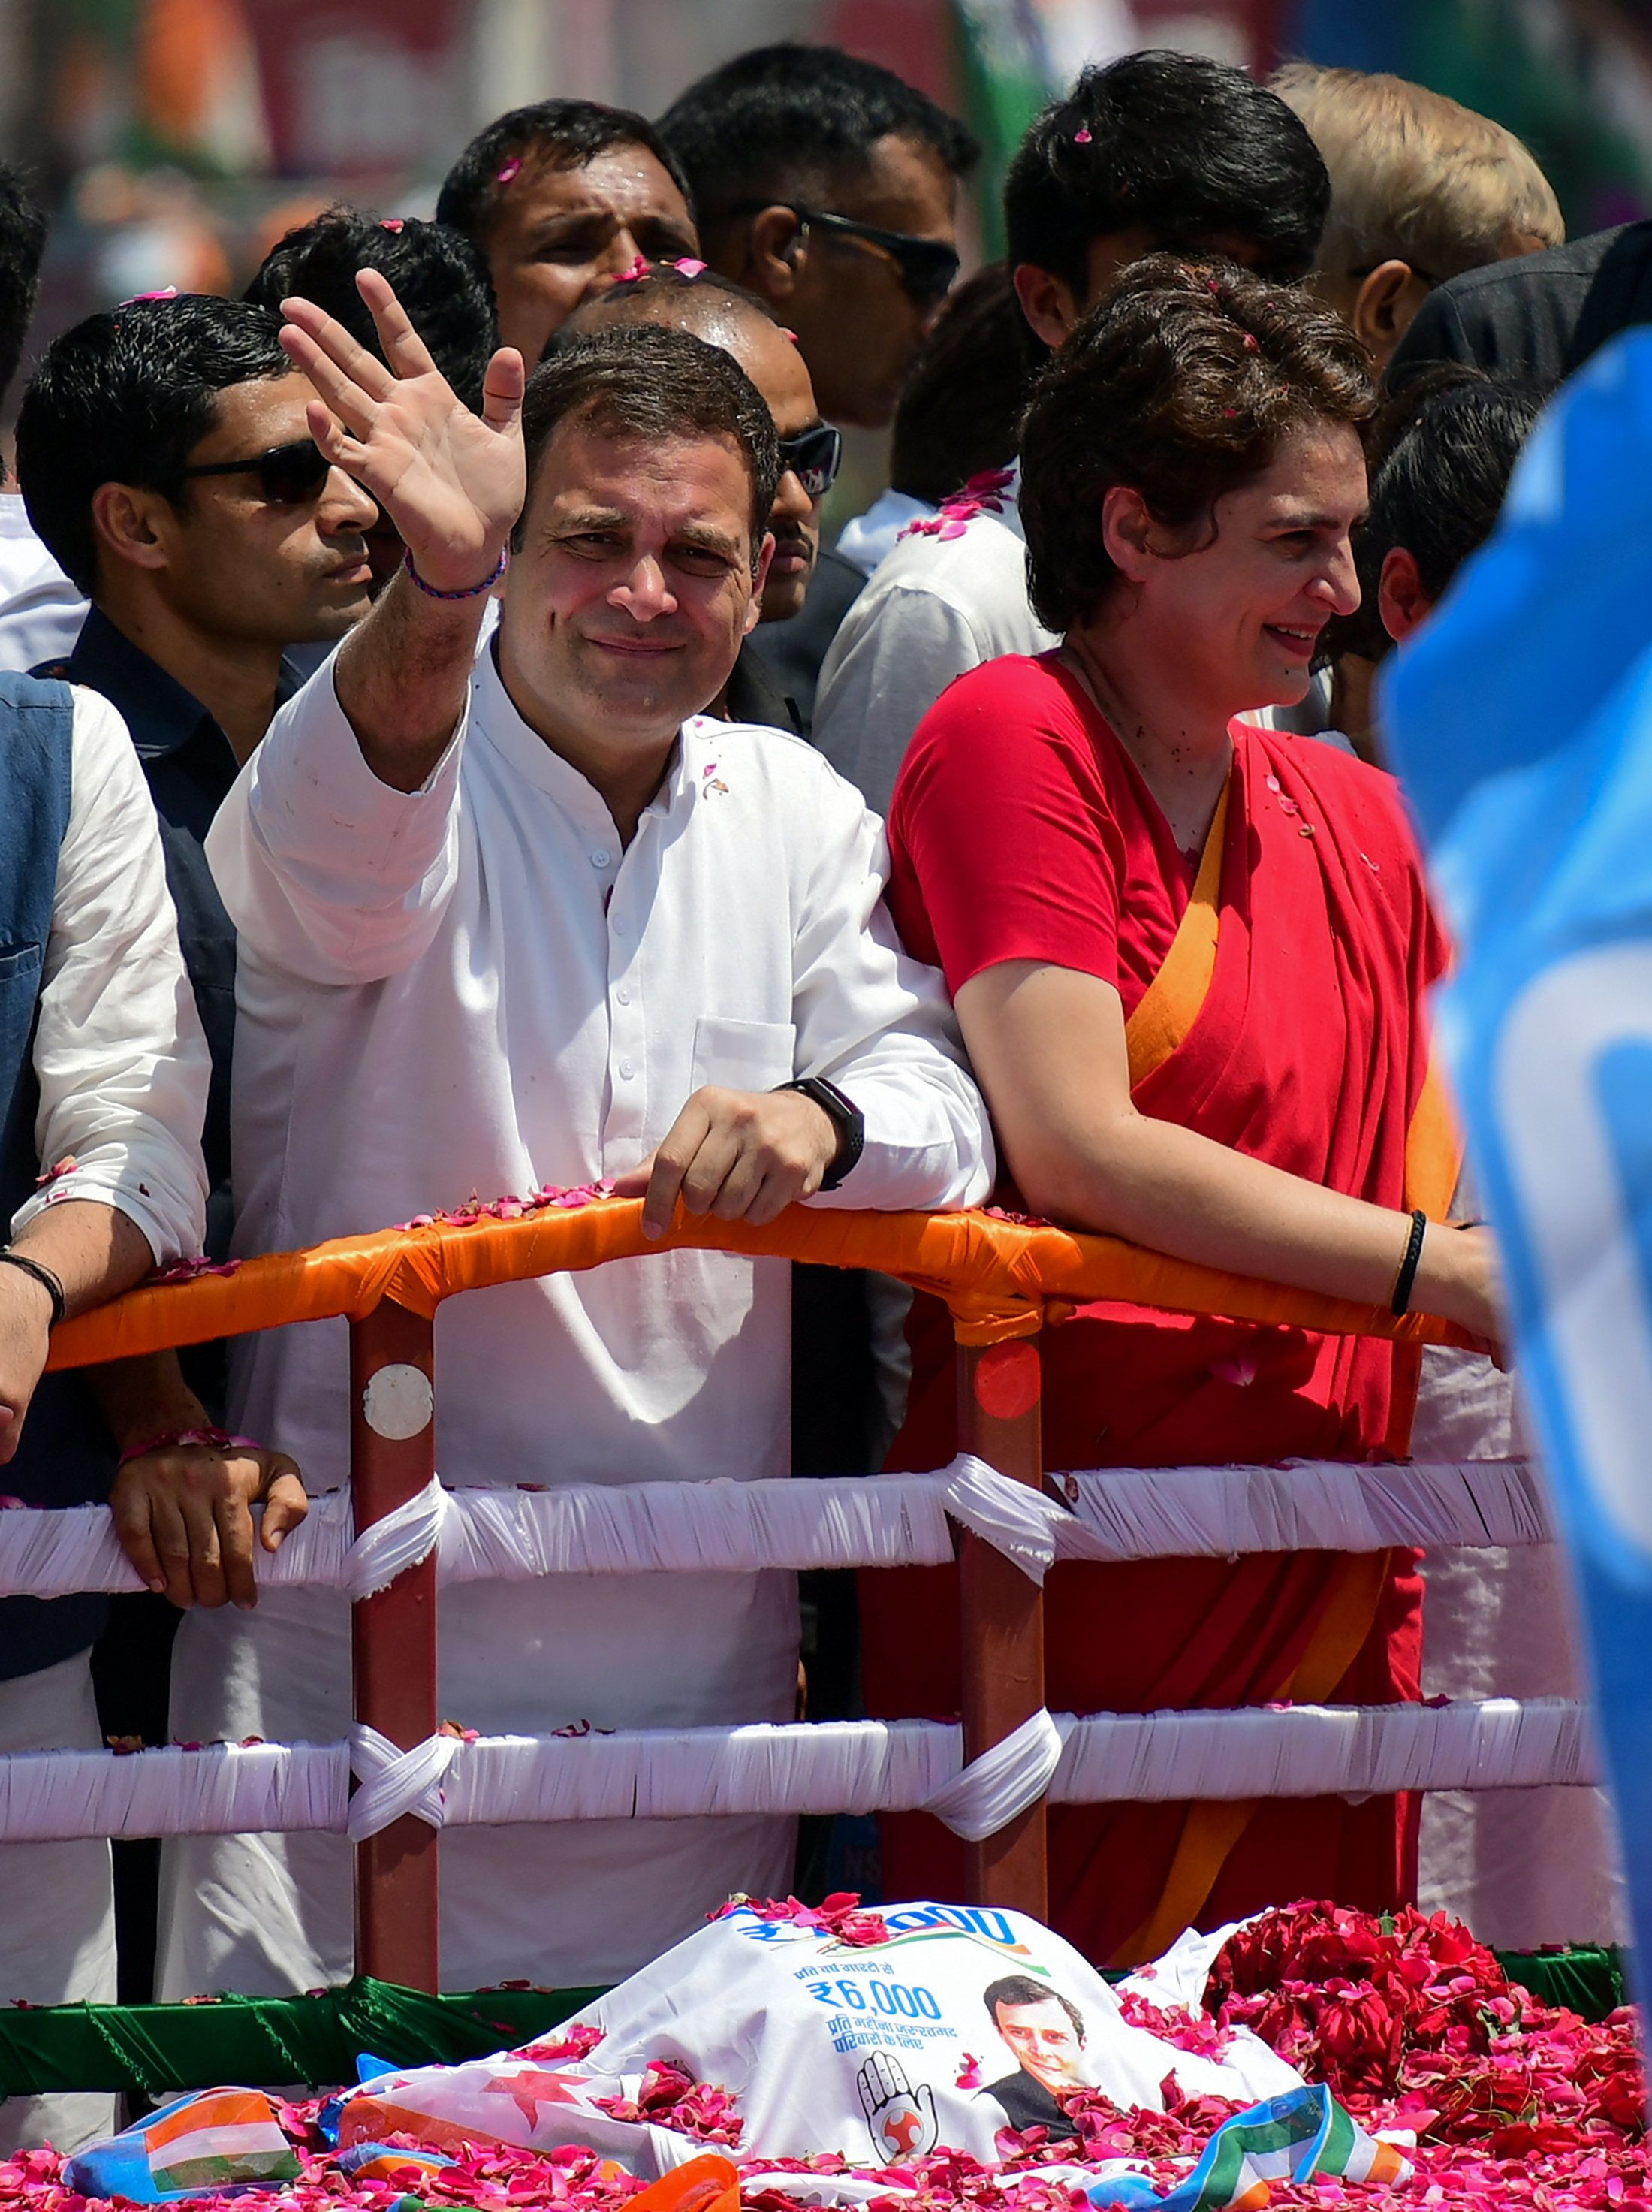 Rahul Gandhi Is Locked In A Heated Contest With Smriti Irani In